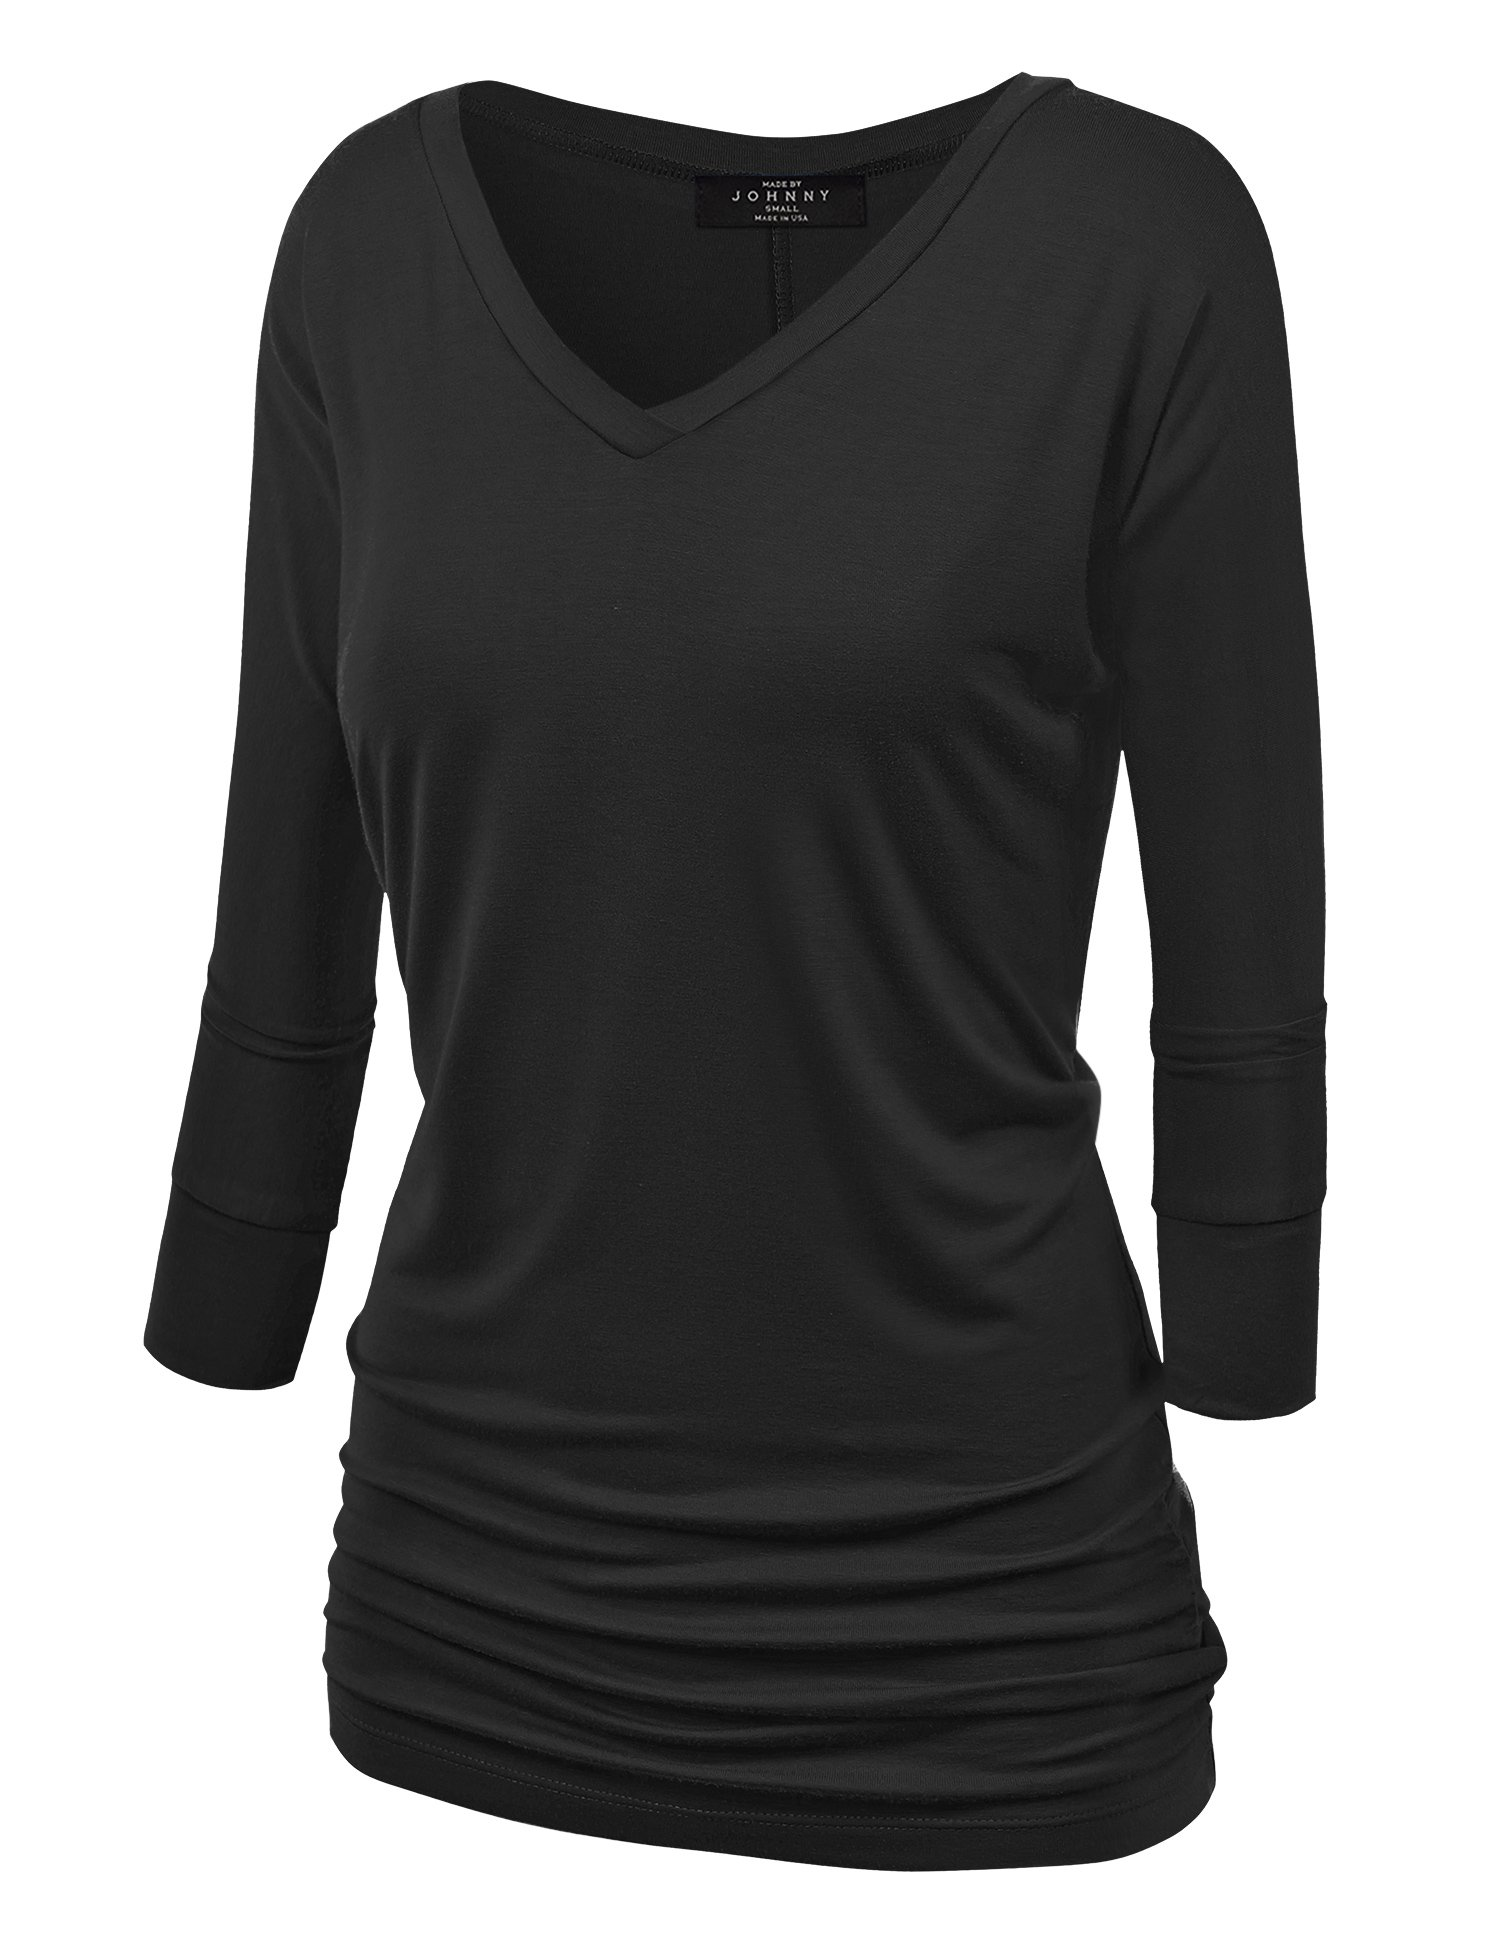 Made By Johnny WT1036 Womens V Neck 3/4 Sleeve Dolman Top with Side Shirring L Black